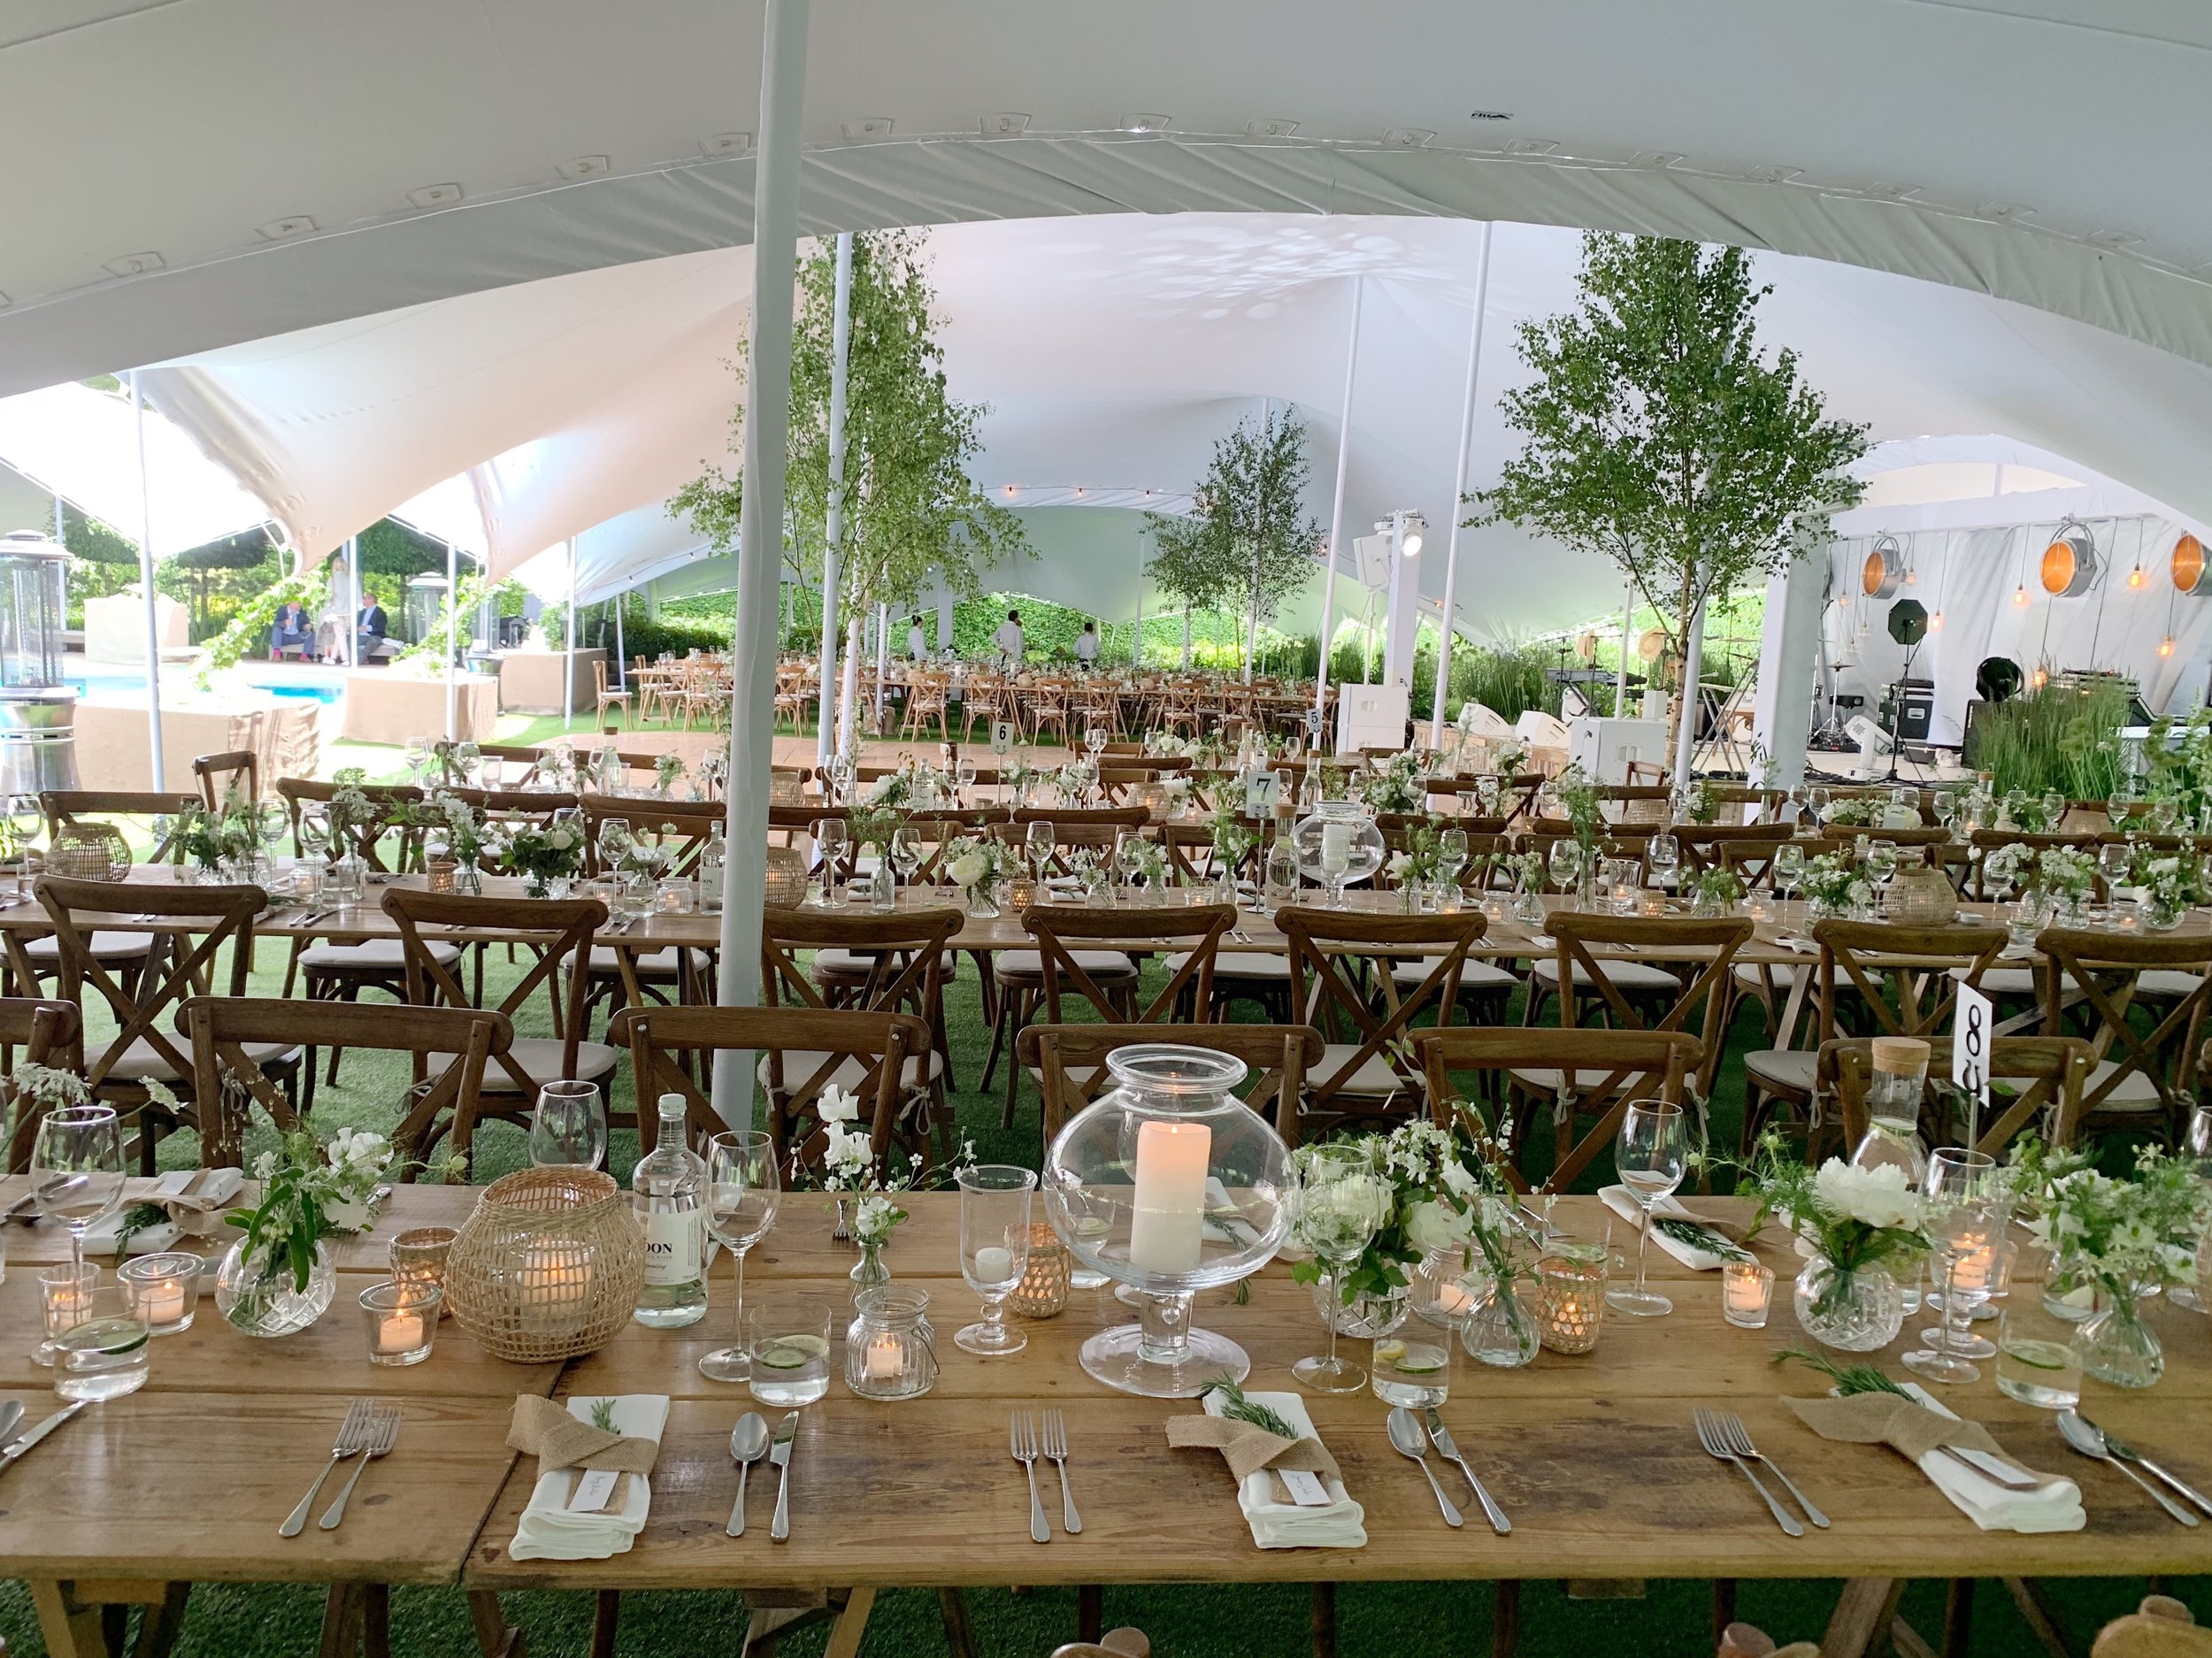 The+Hill+Food+Company+event+set+up+marquee.jpg